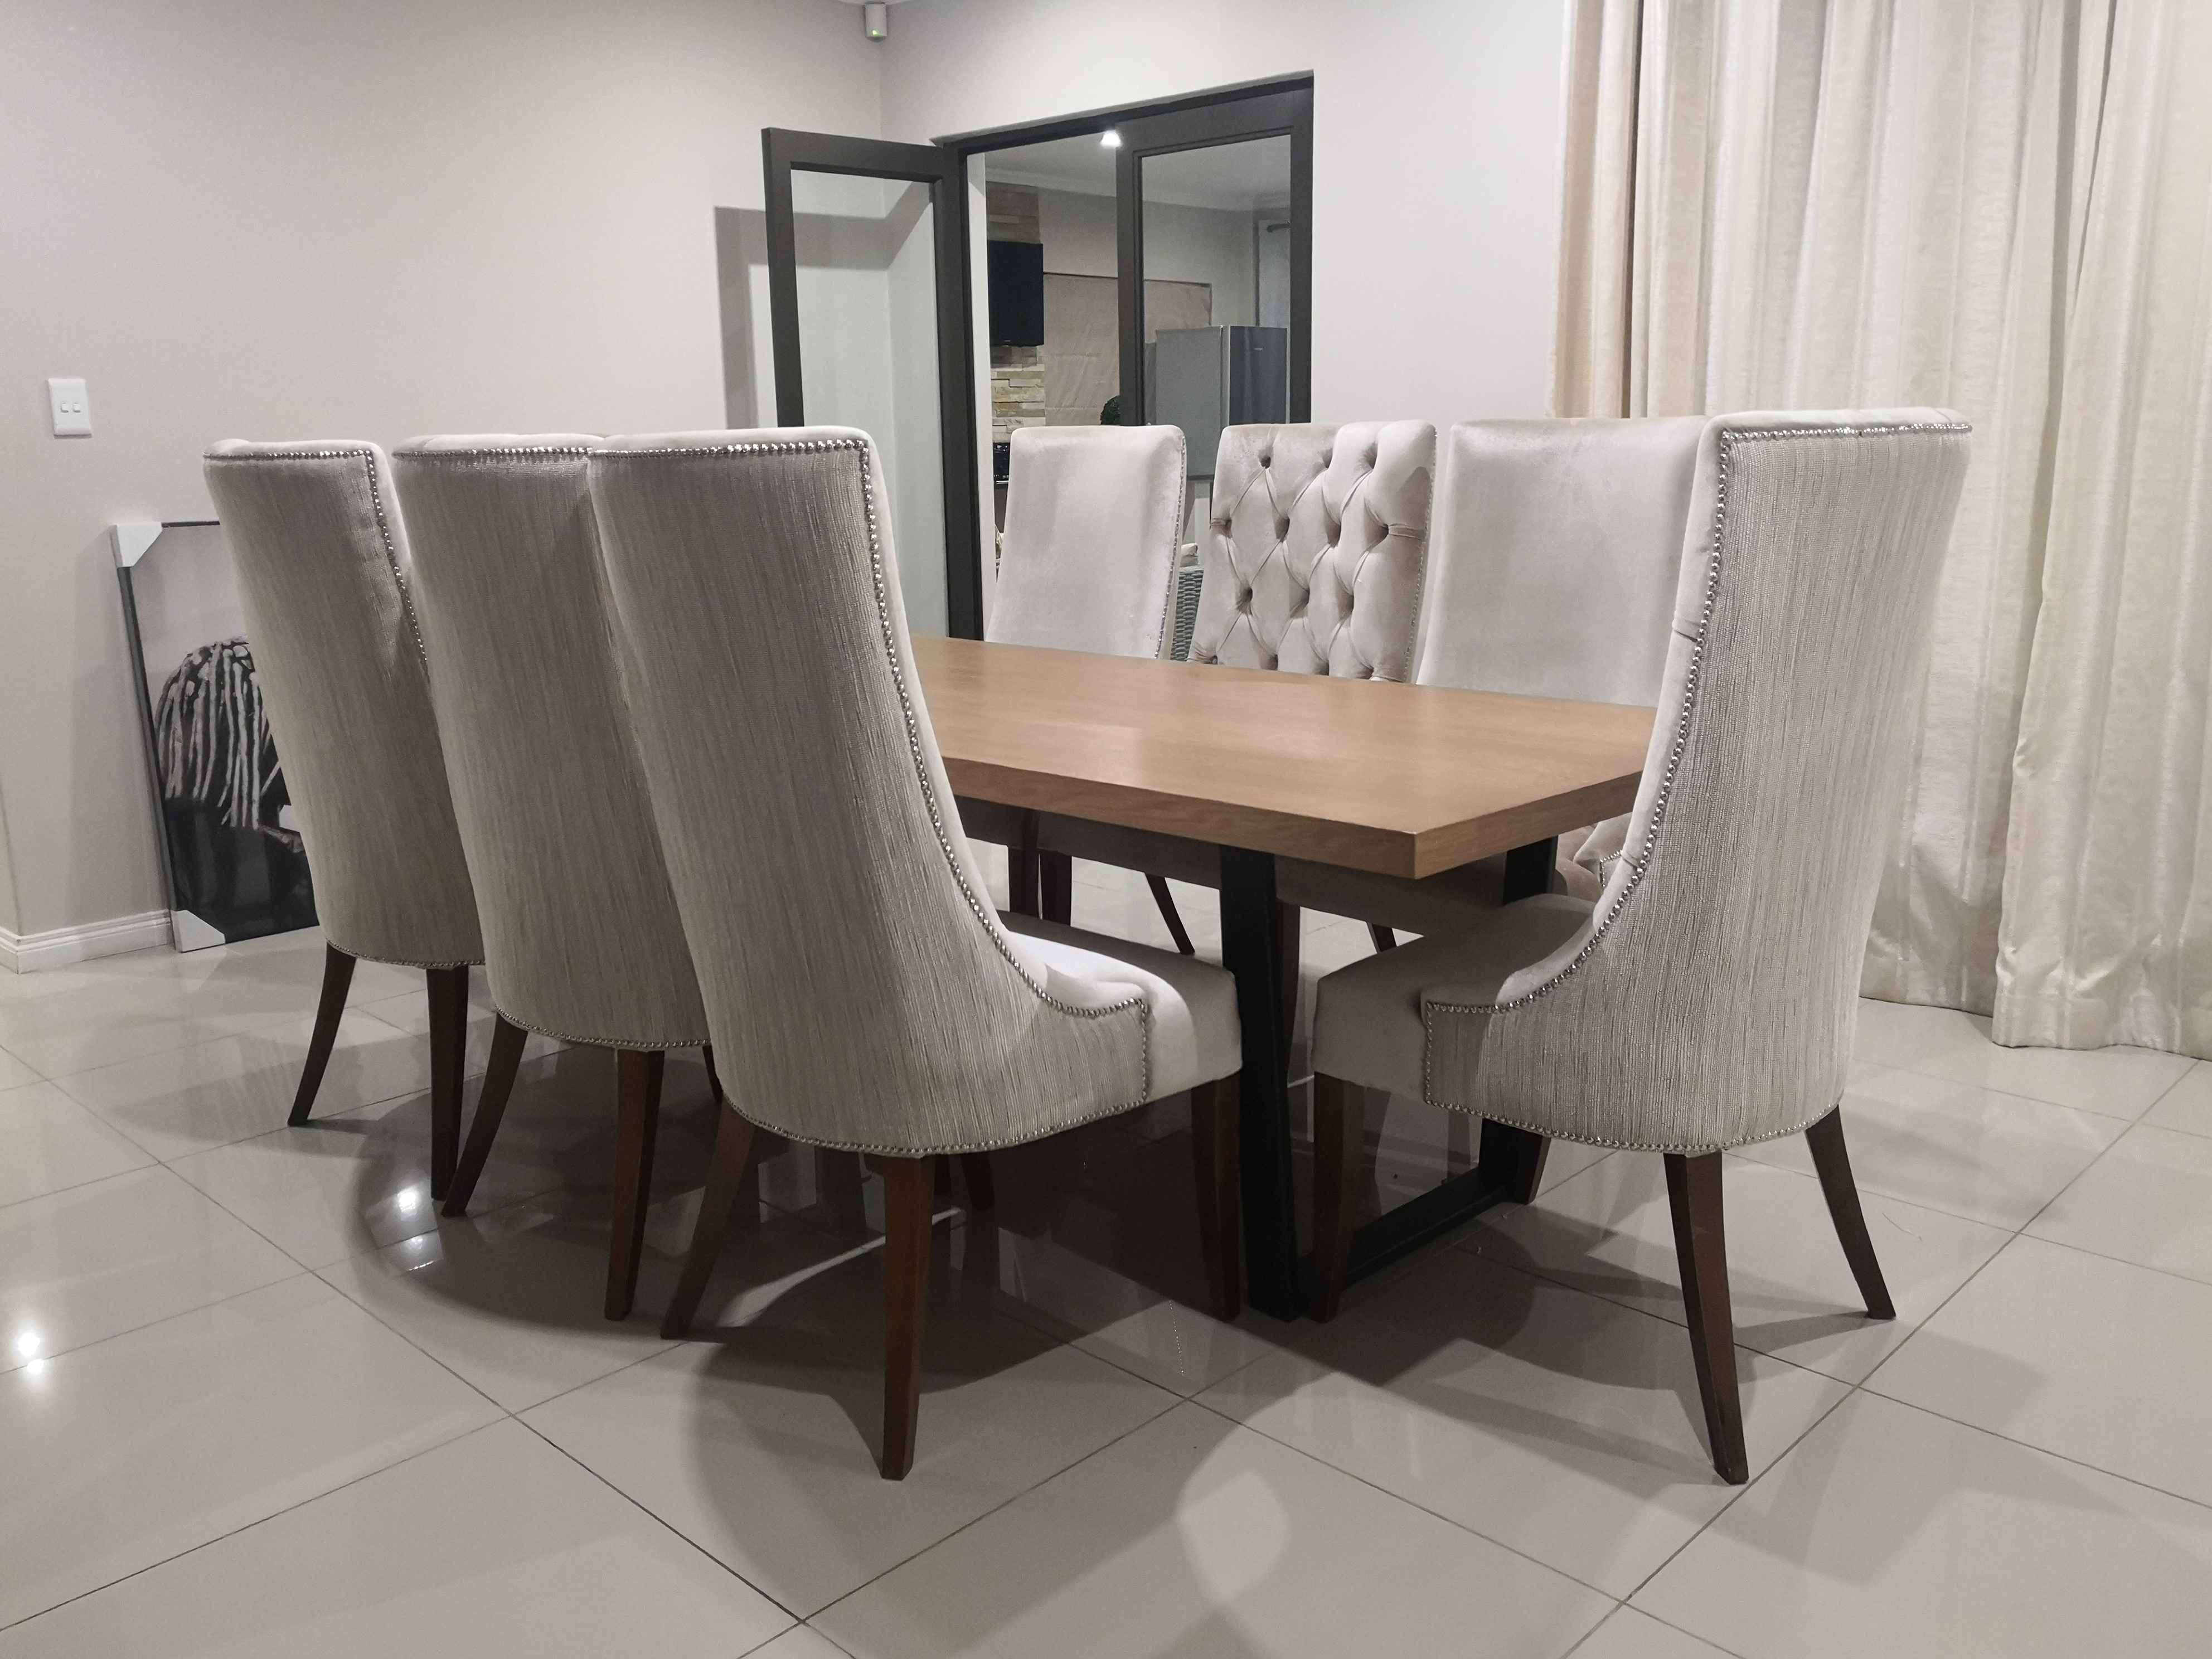 Elelwani 9 Seater Dining Table